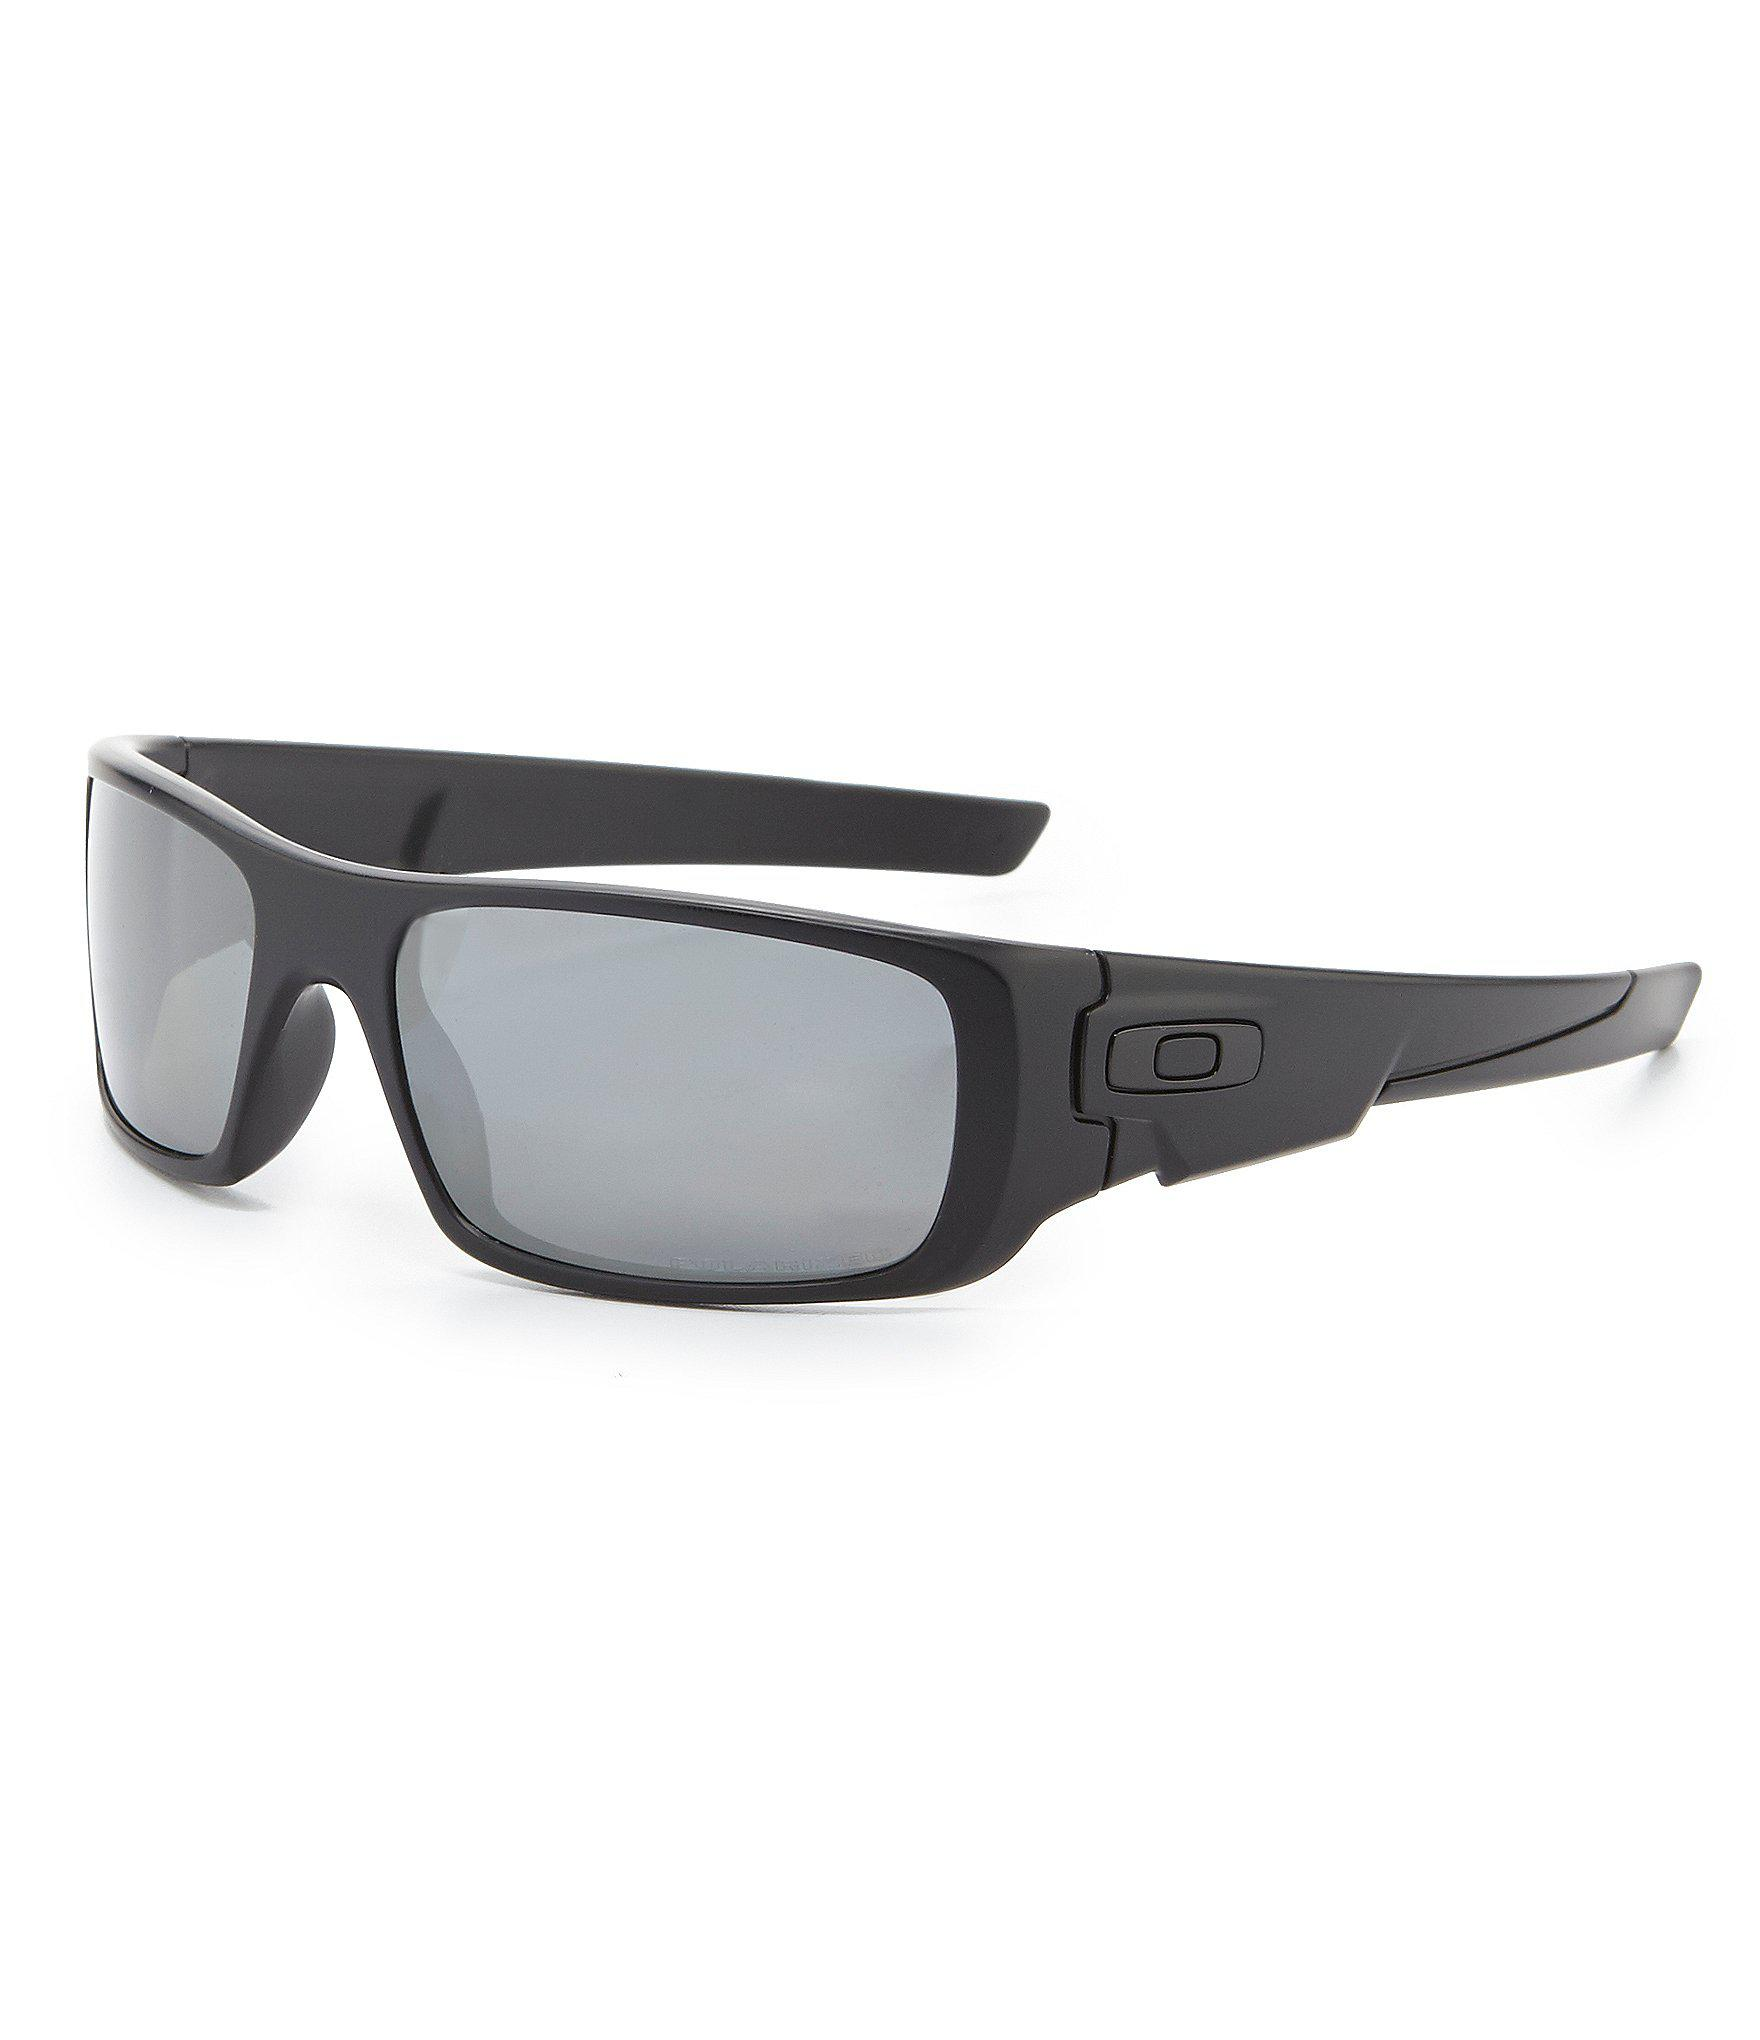 3c129fbd6a Lyst - Oakley Polarized Crankshaft Sunglasses in Black for Men